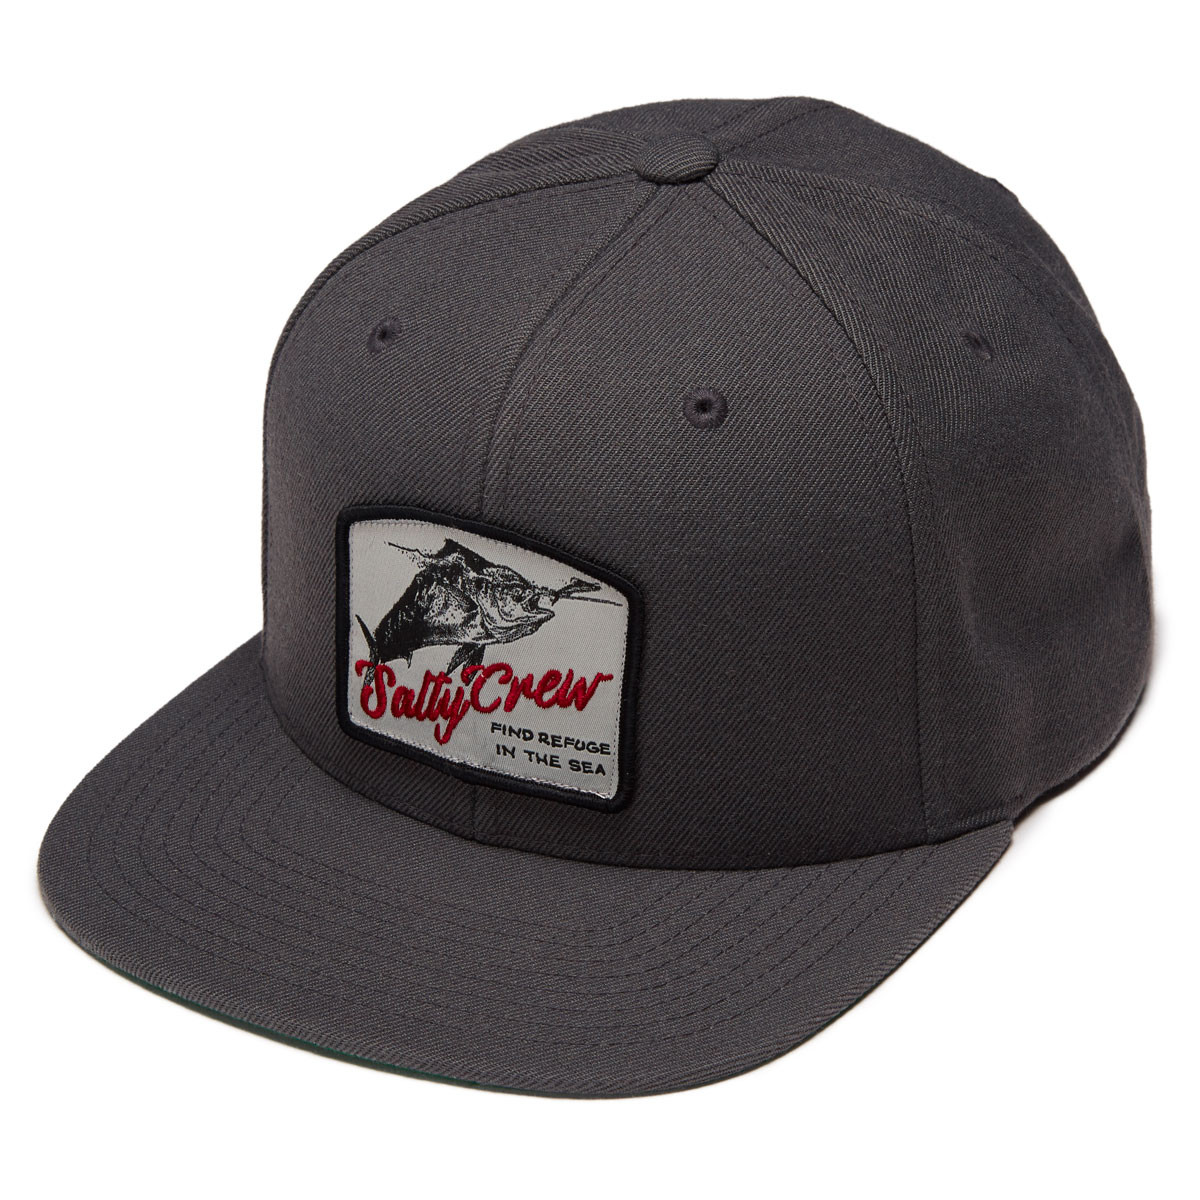 the best attitude a1d54 ddcdc usa salty crew stacked hat tackledirect 28bb7 17821  authentic salty crew  seeker hat charcoal c6058 99b5f